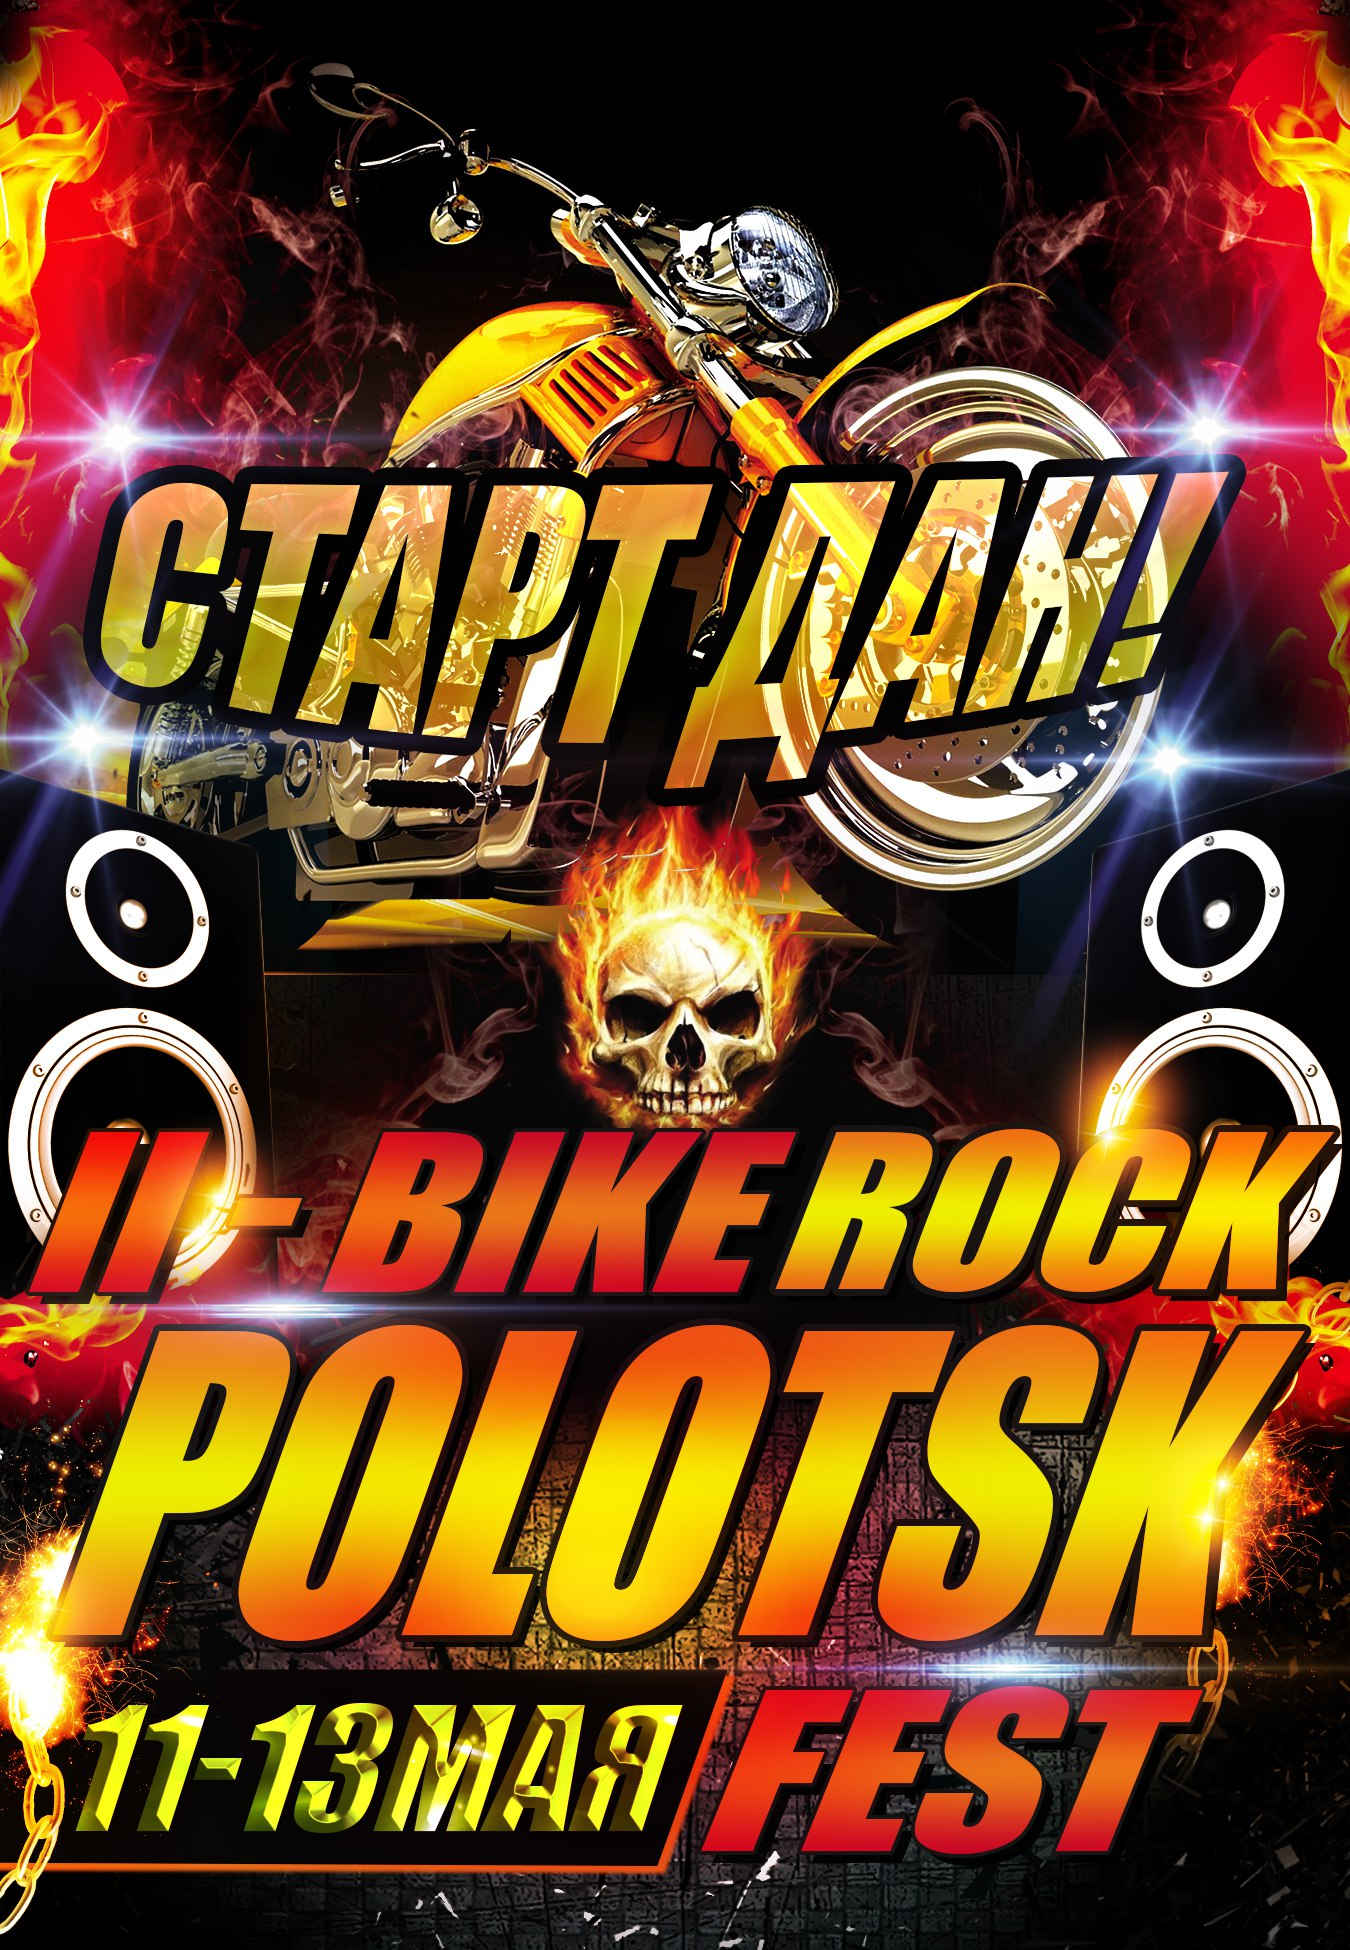 Bike Rock Fest Polotsk 2018